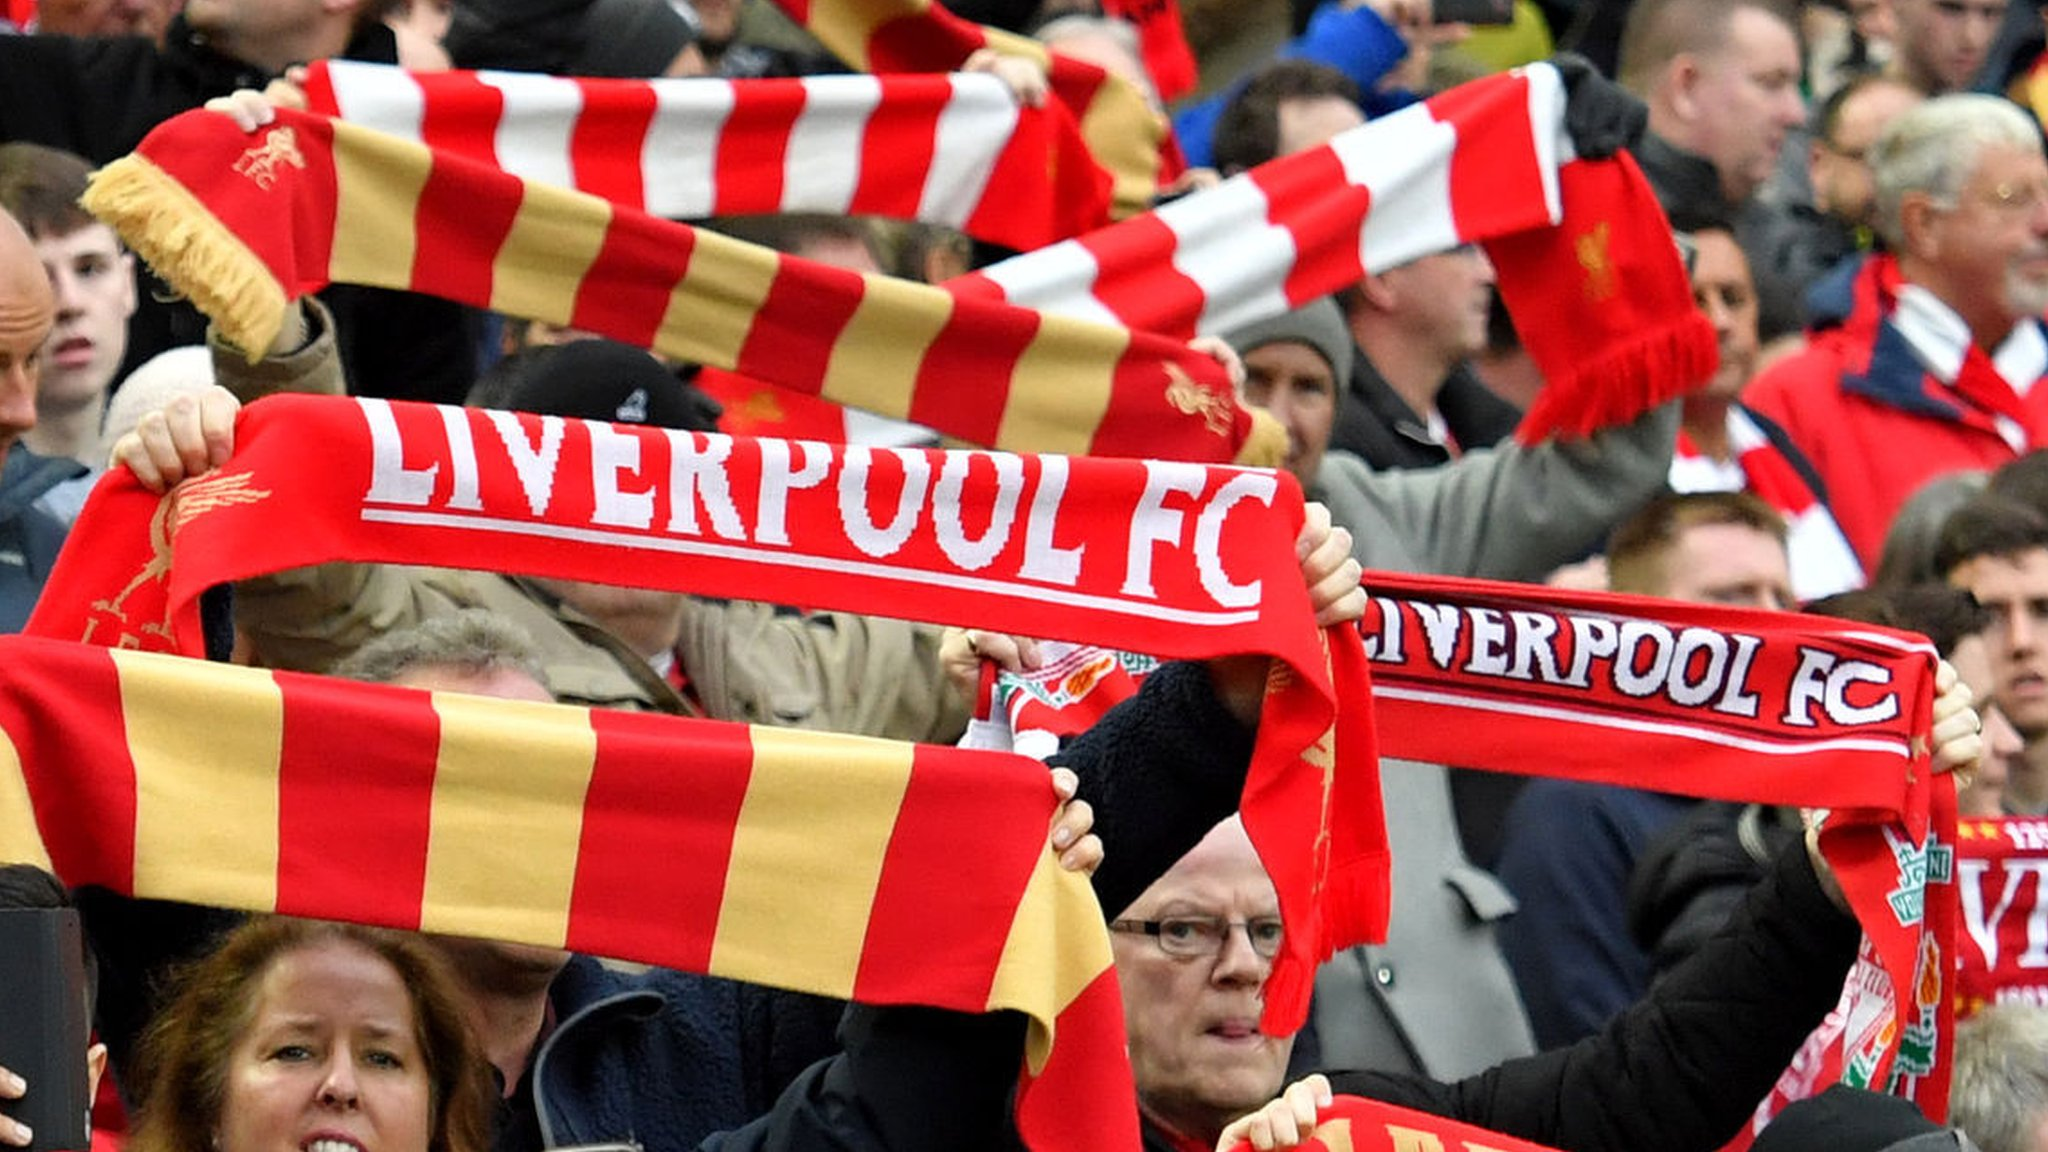 Liverpool look into 'troubling' actions by police & stewards in Seville